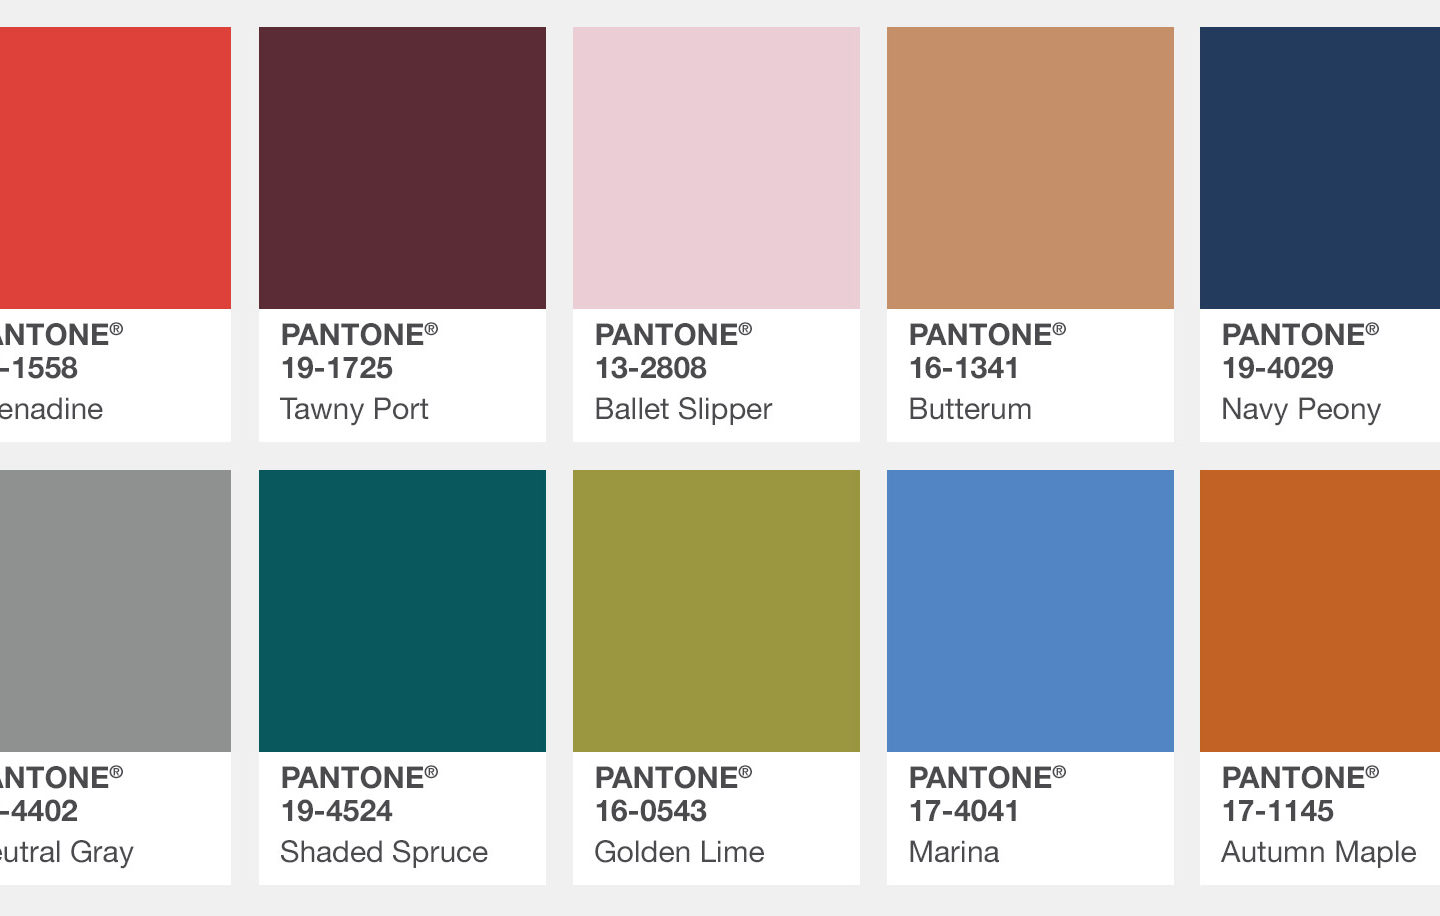 Pantone Fall 2017 Colour Trends – What are they wearing on the runways?